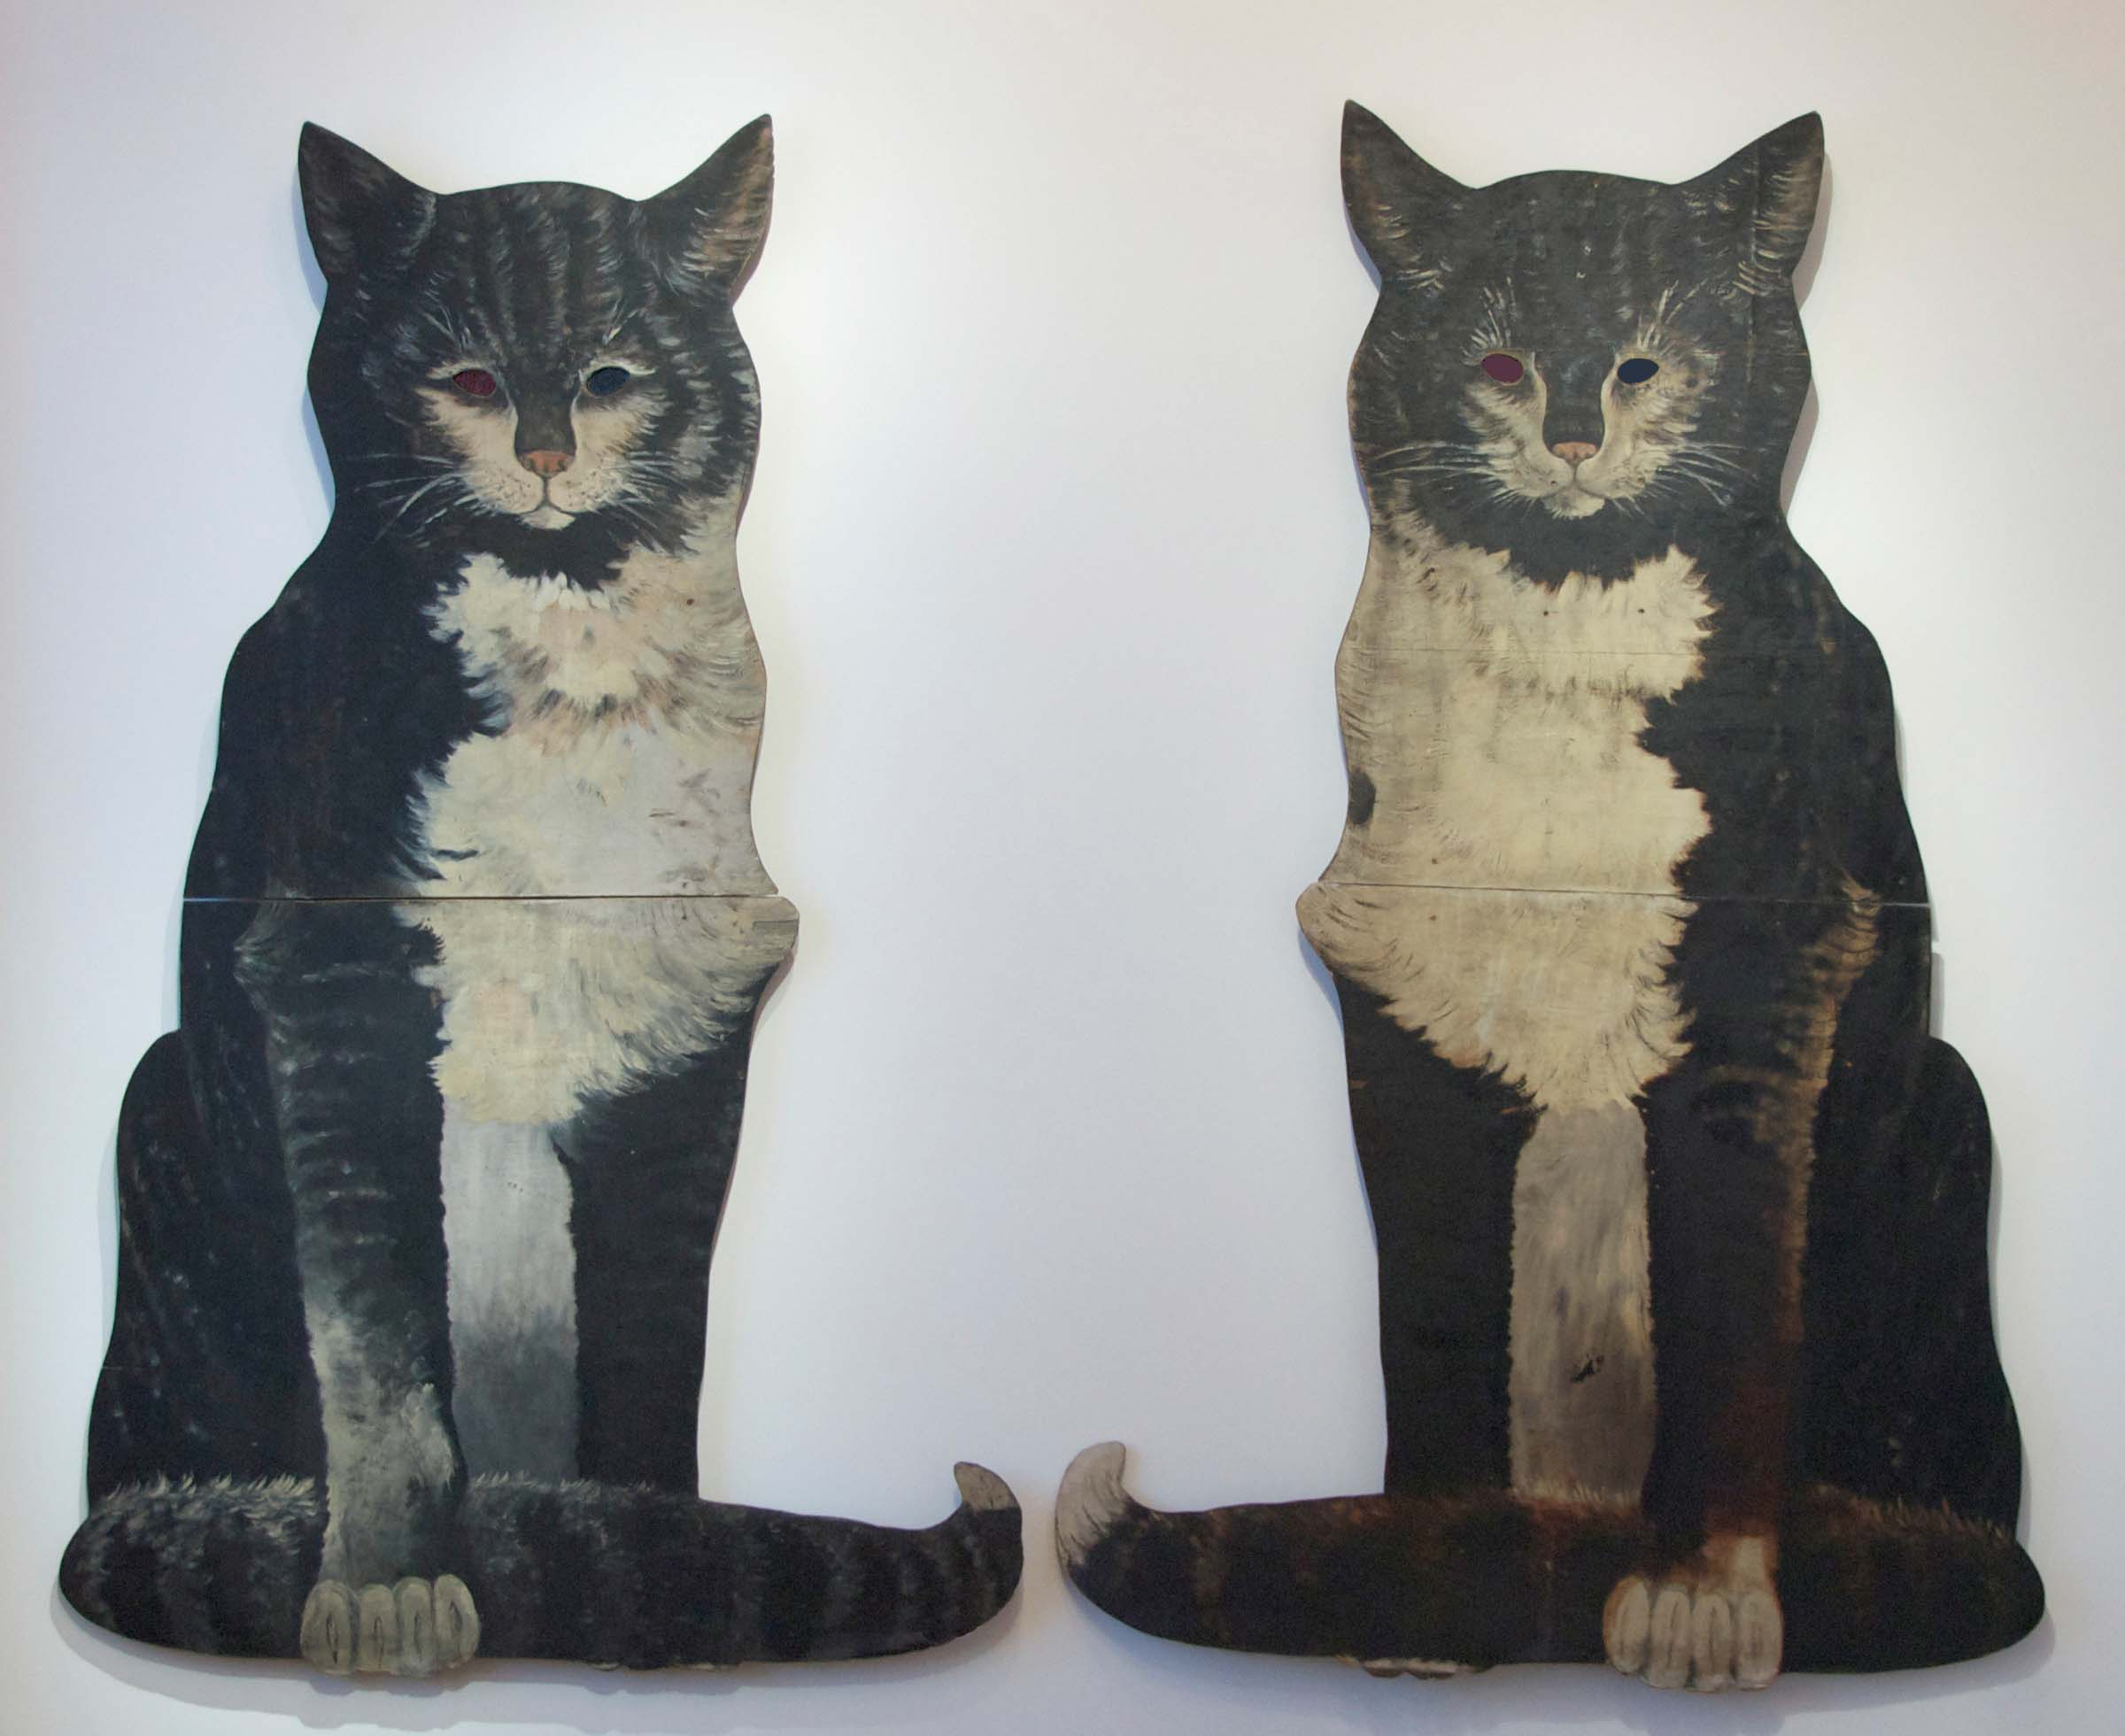 Anonymous, American, Pair of Cat Stage Props, c. 1940m wood with original paint and glass eyes, 60h x 30w x 4d in.